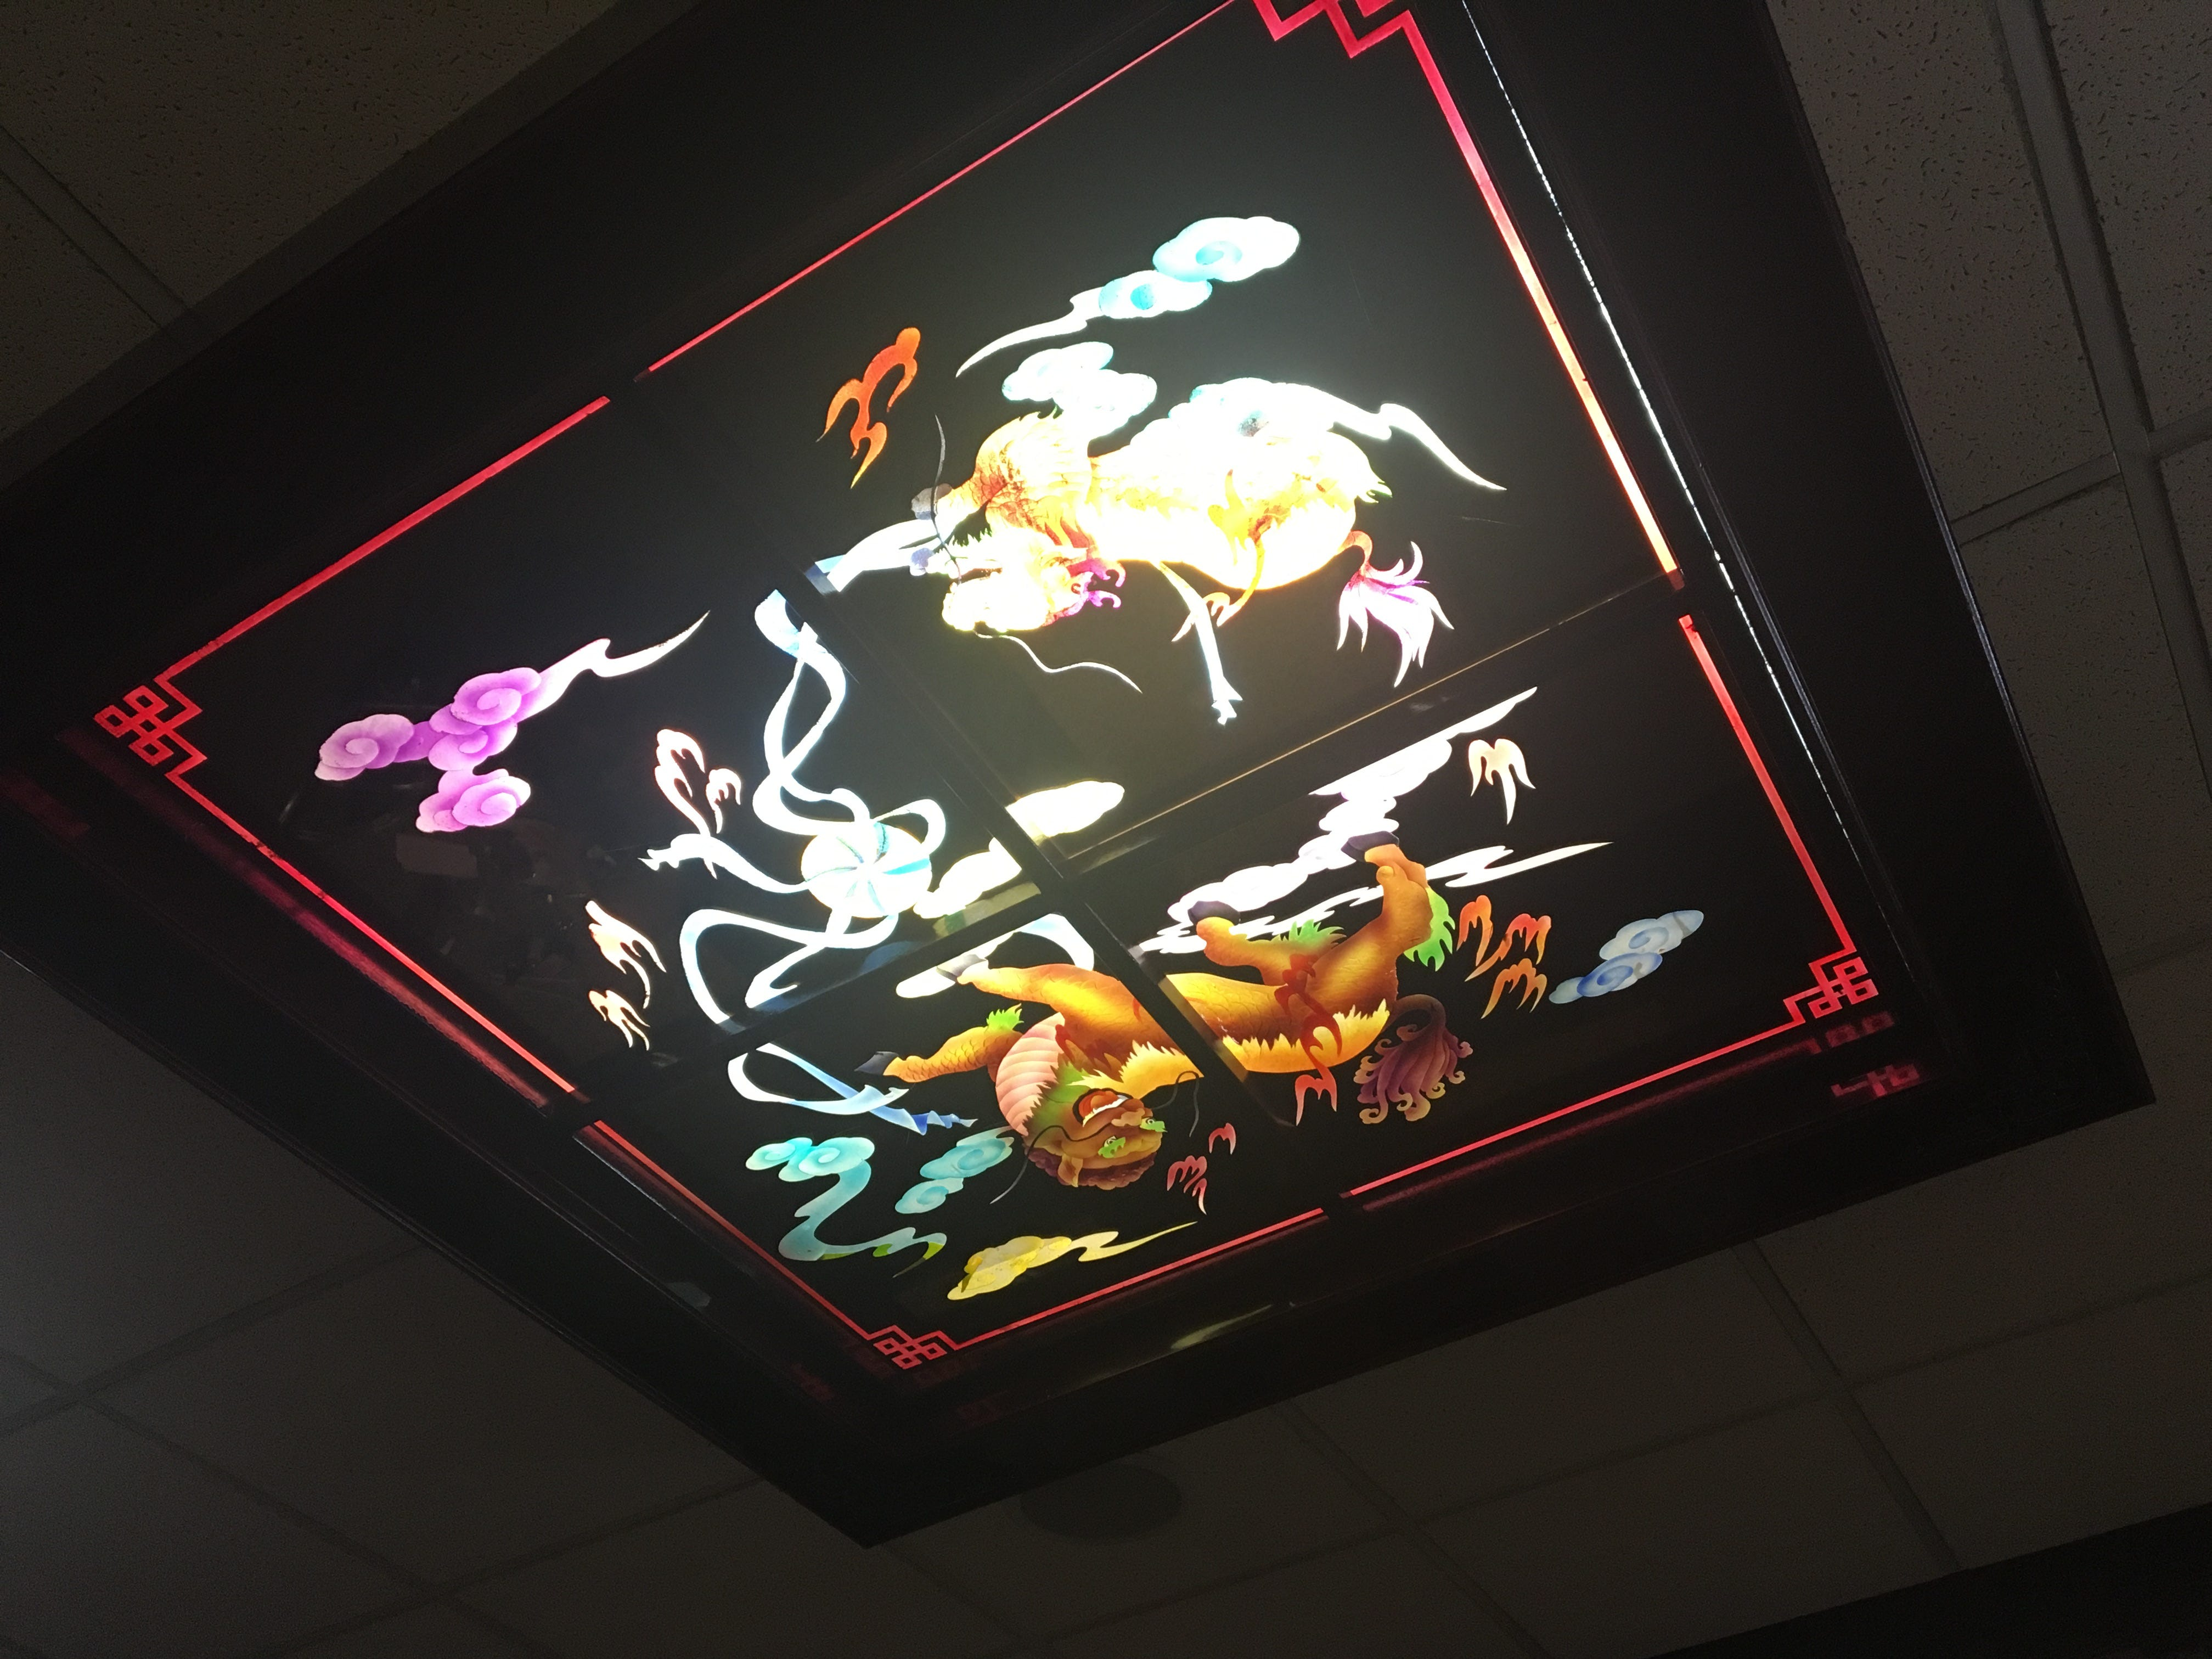 Traditional Chinese imagery can be found in the decor at Yoki Buffet, including these lights.